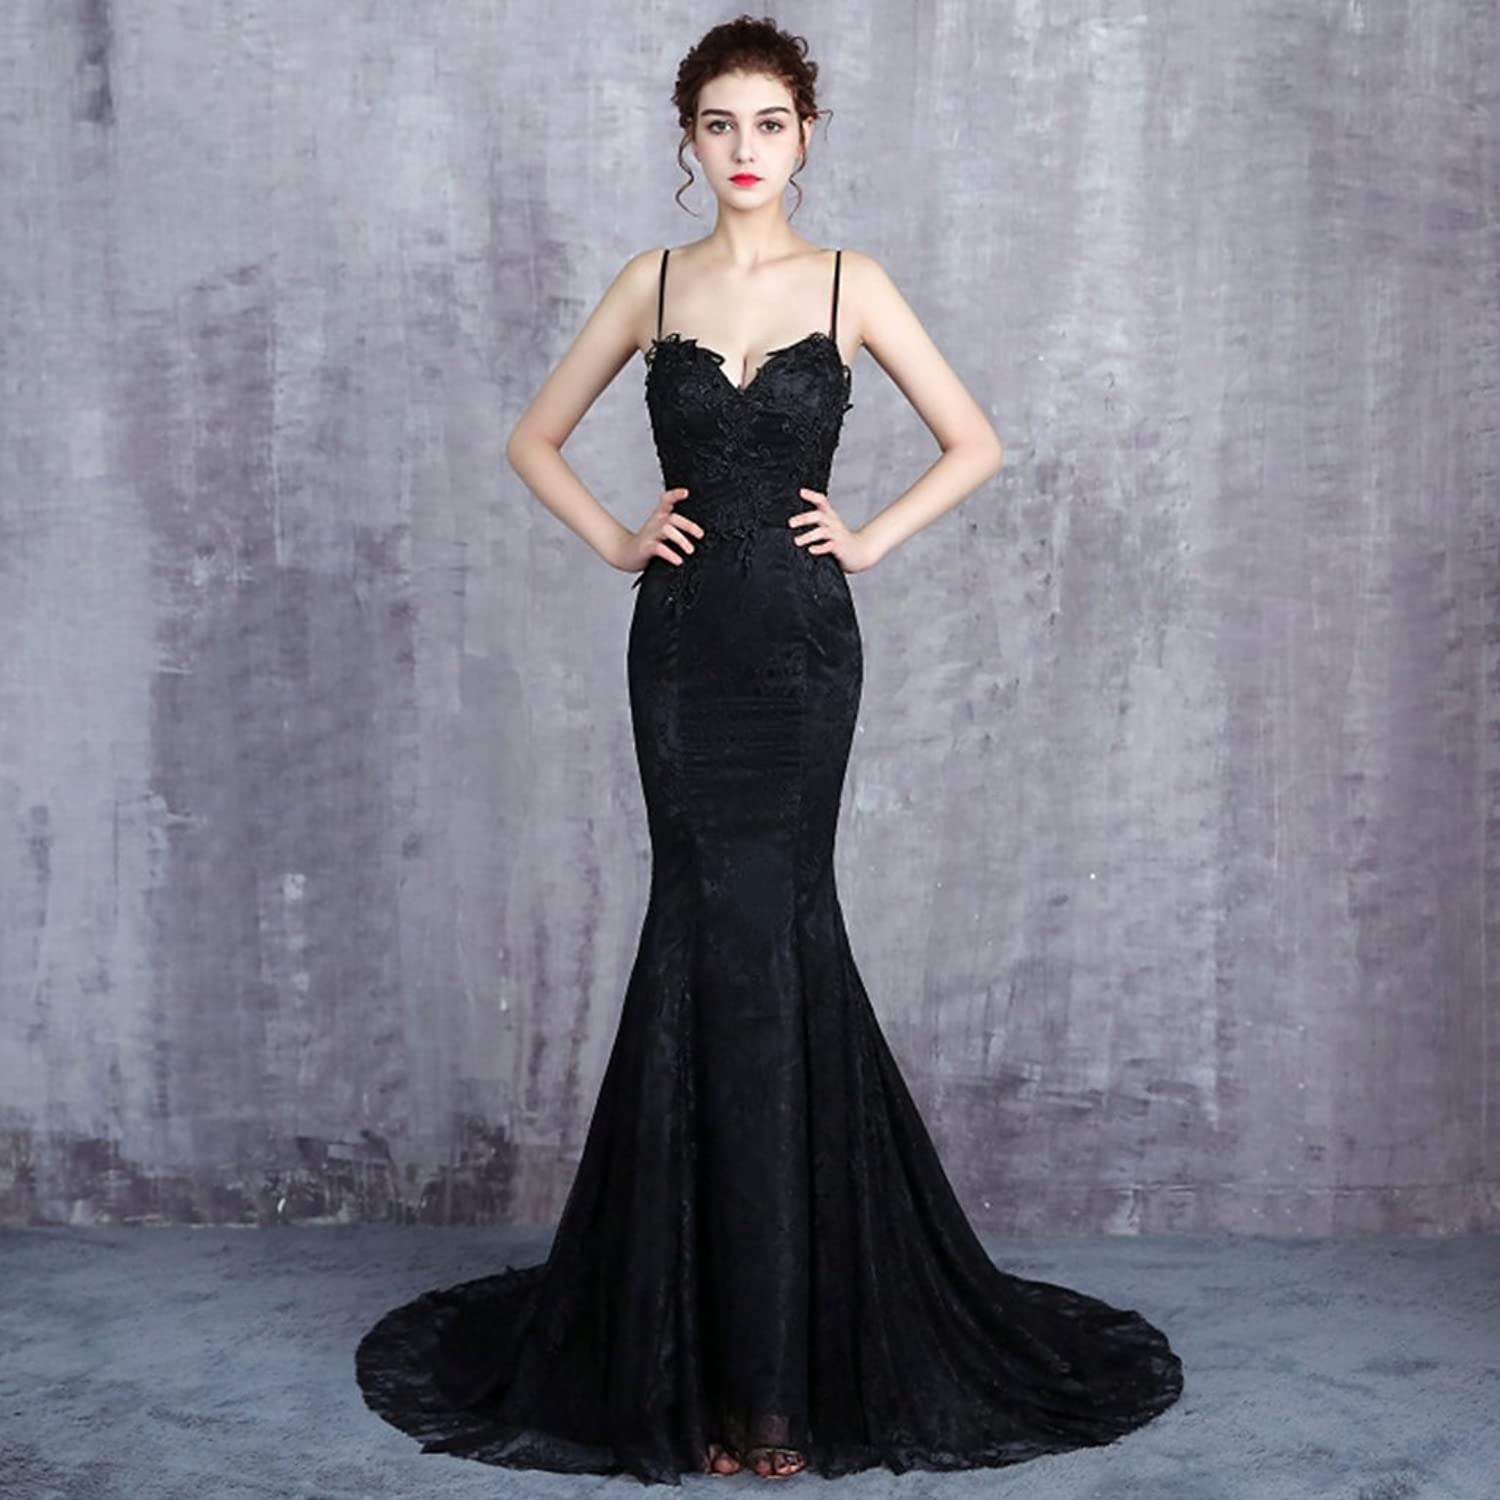 Women's Simple Black Wedding Dresses Spaghetti Straps VNeck Hollow Backless Short Tailing Ball Gown Evening Prom Dresses with Lace Appliques Beading